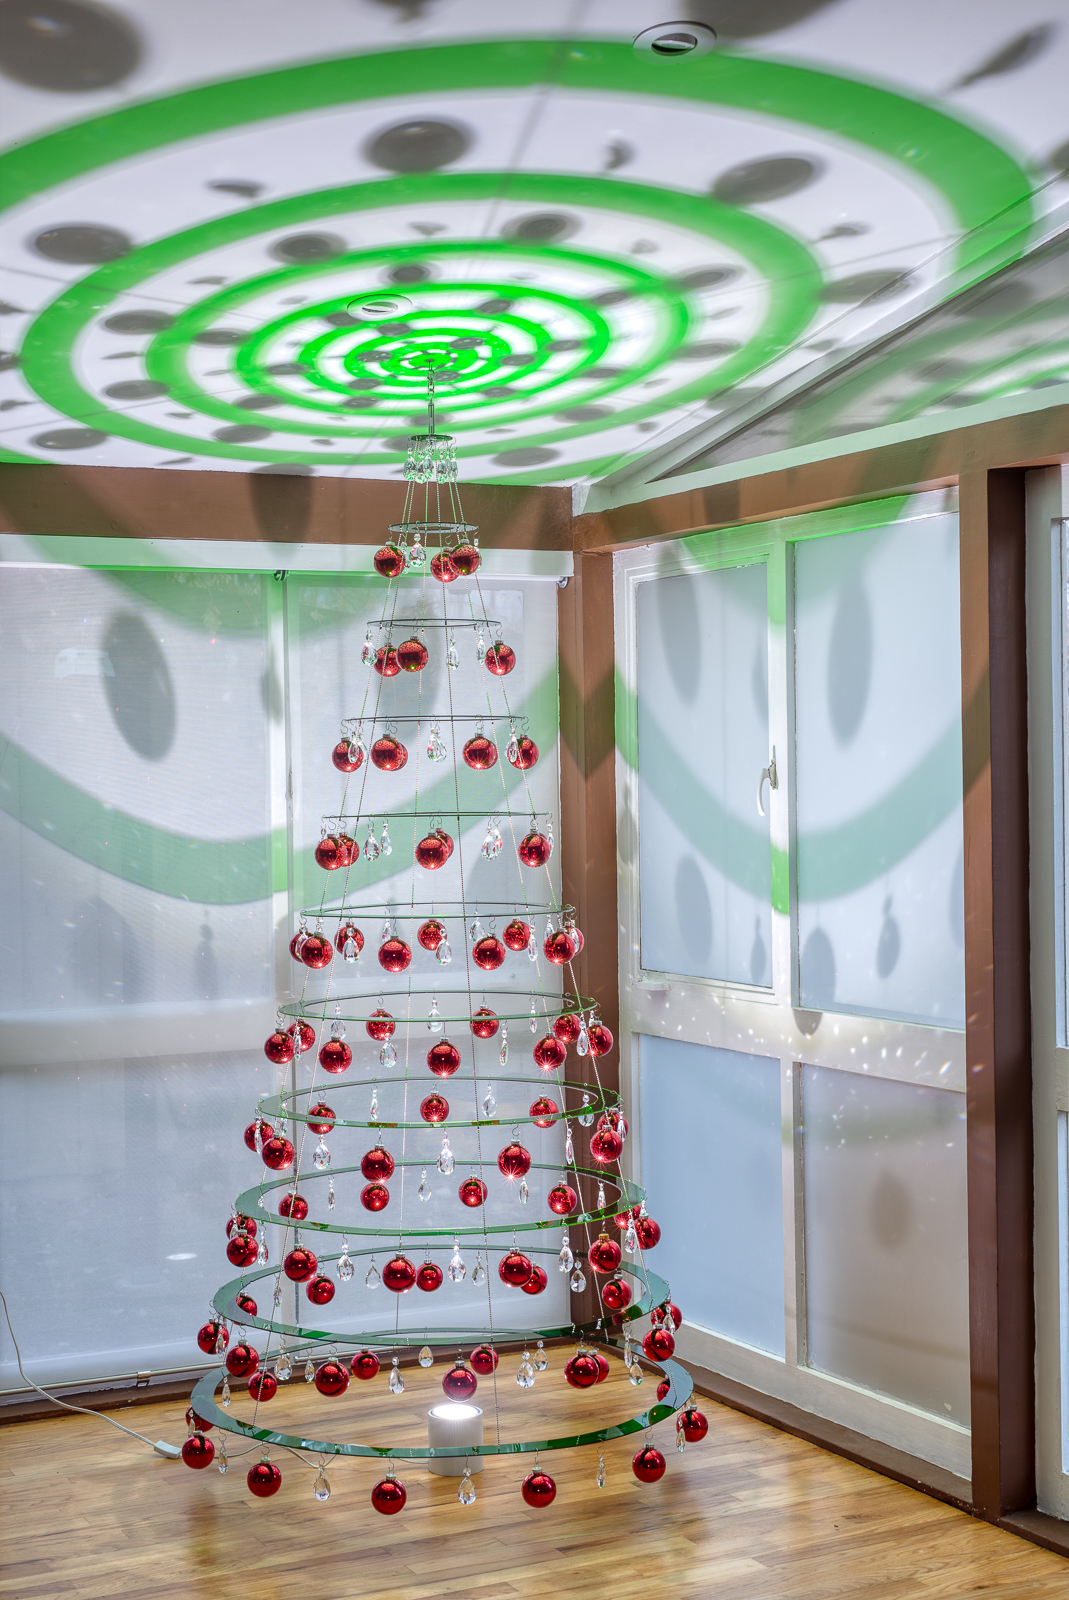 Emerald Green Christmas Tree with Red Ornaments